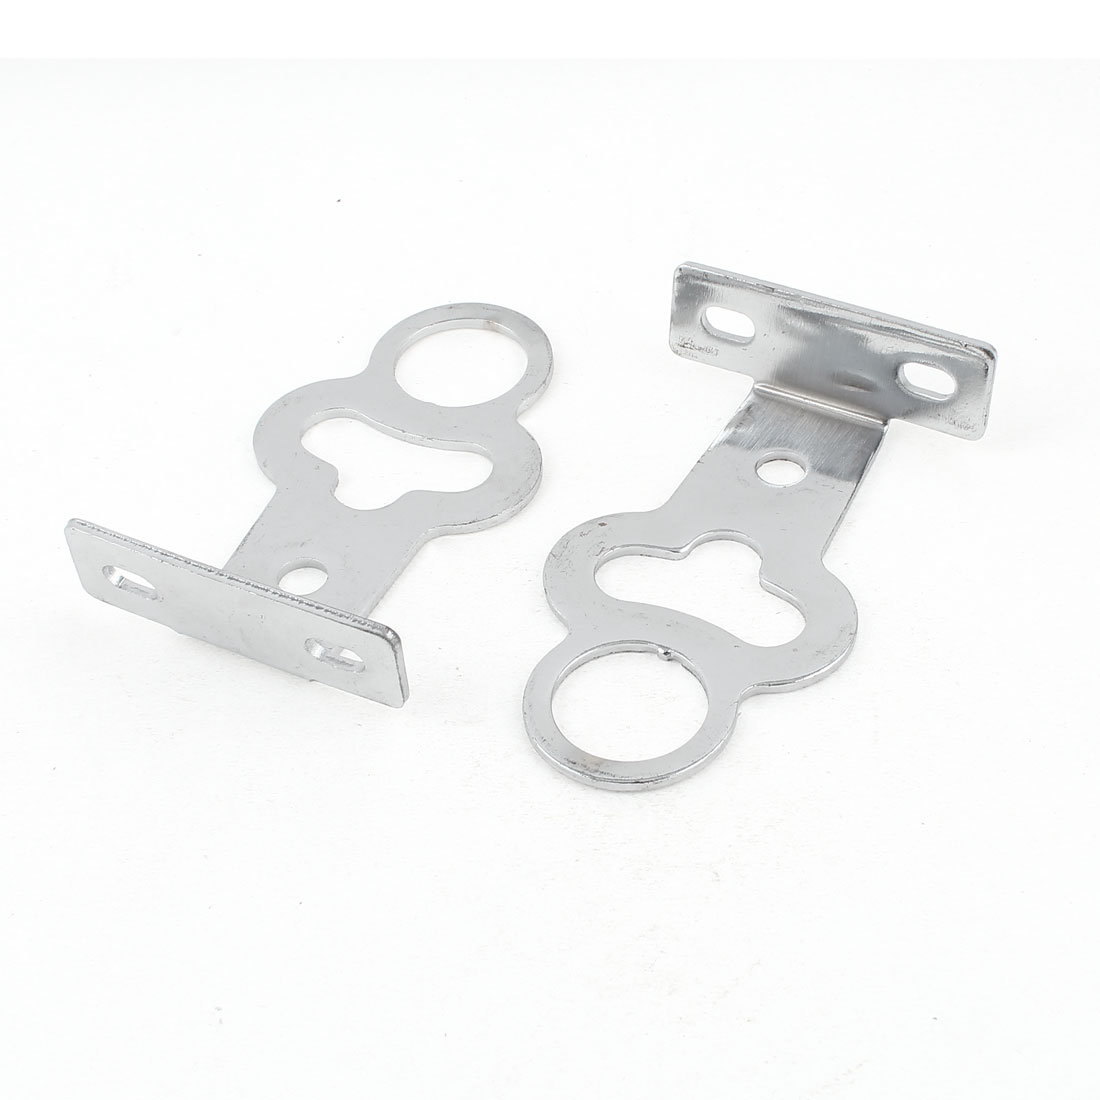 Bike Bicycle Sivler Tone Metal Brake Pedal Covers 2 PCS